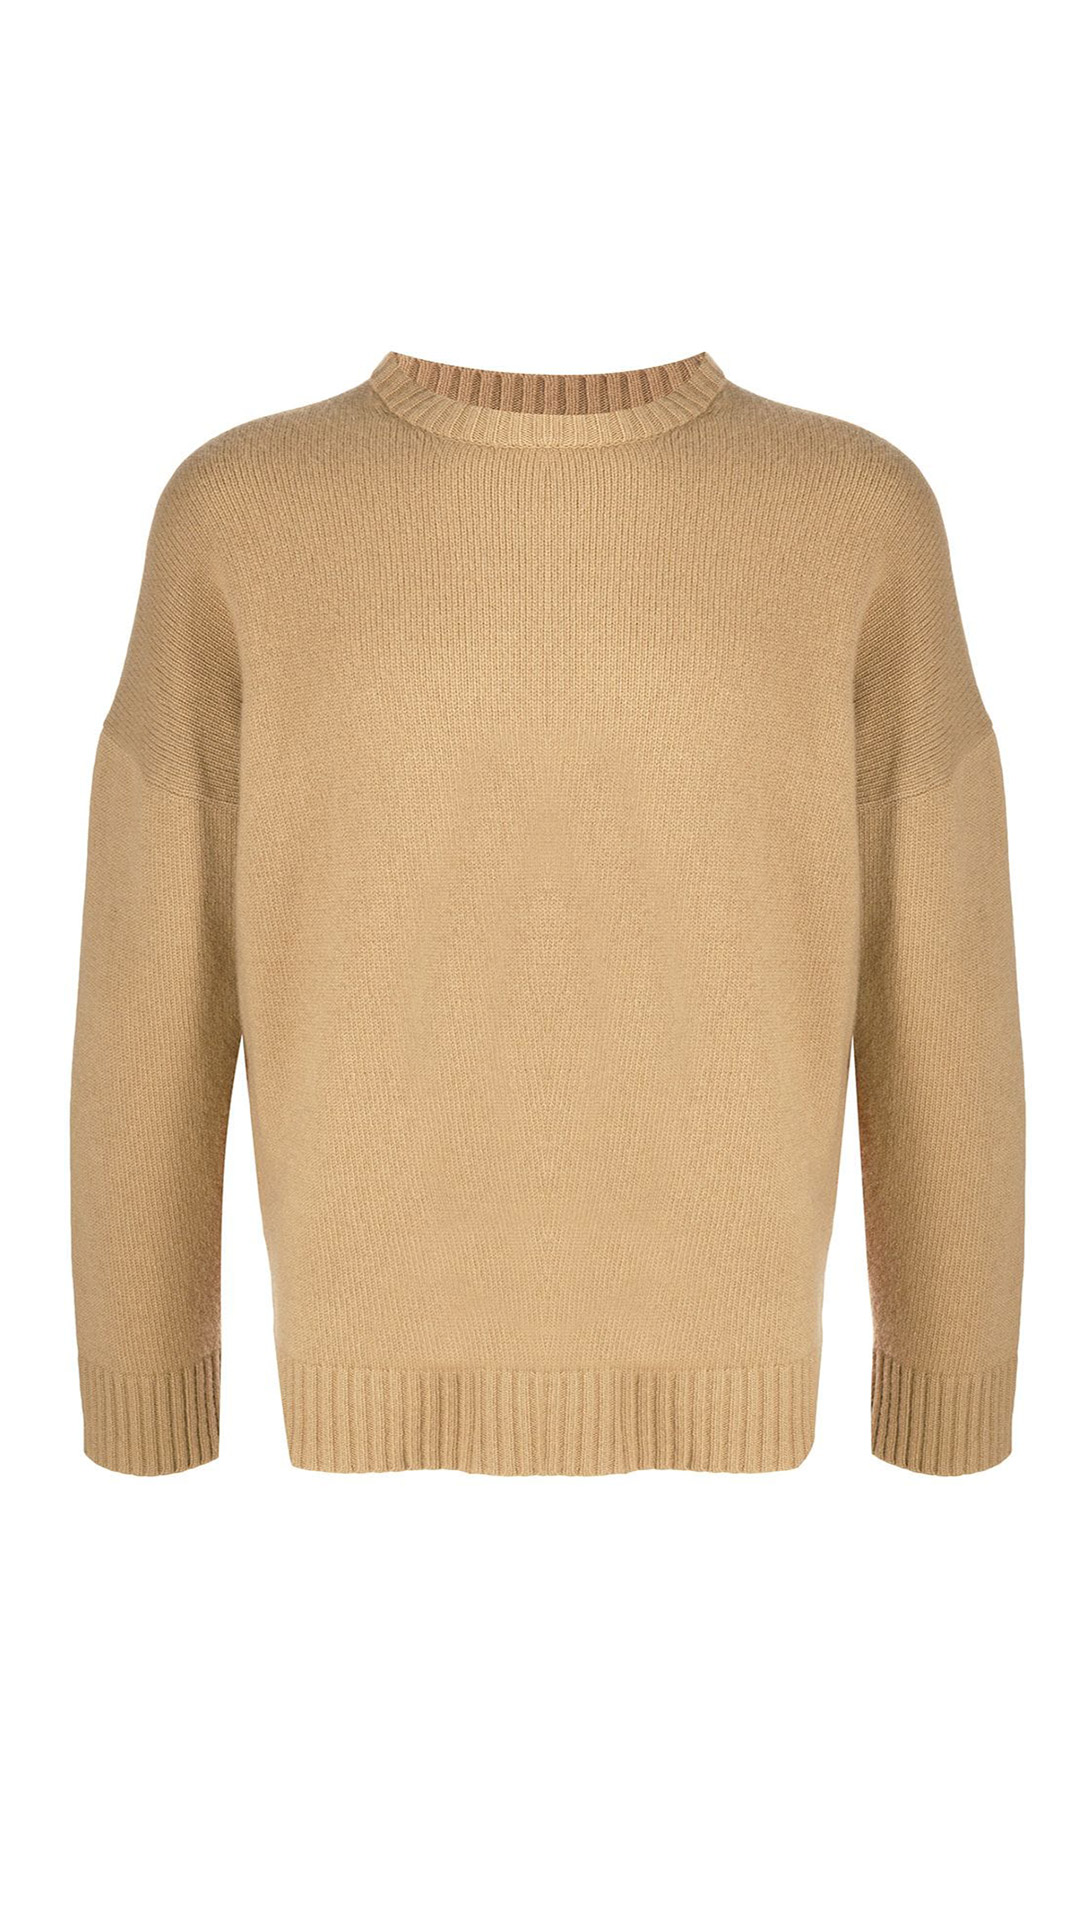 OPENING CEREMONY Relaxed-Fit Jumper